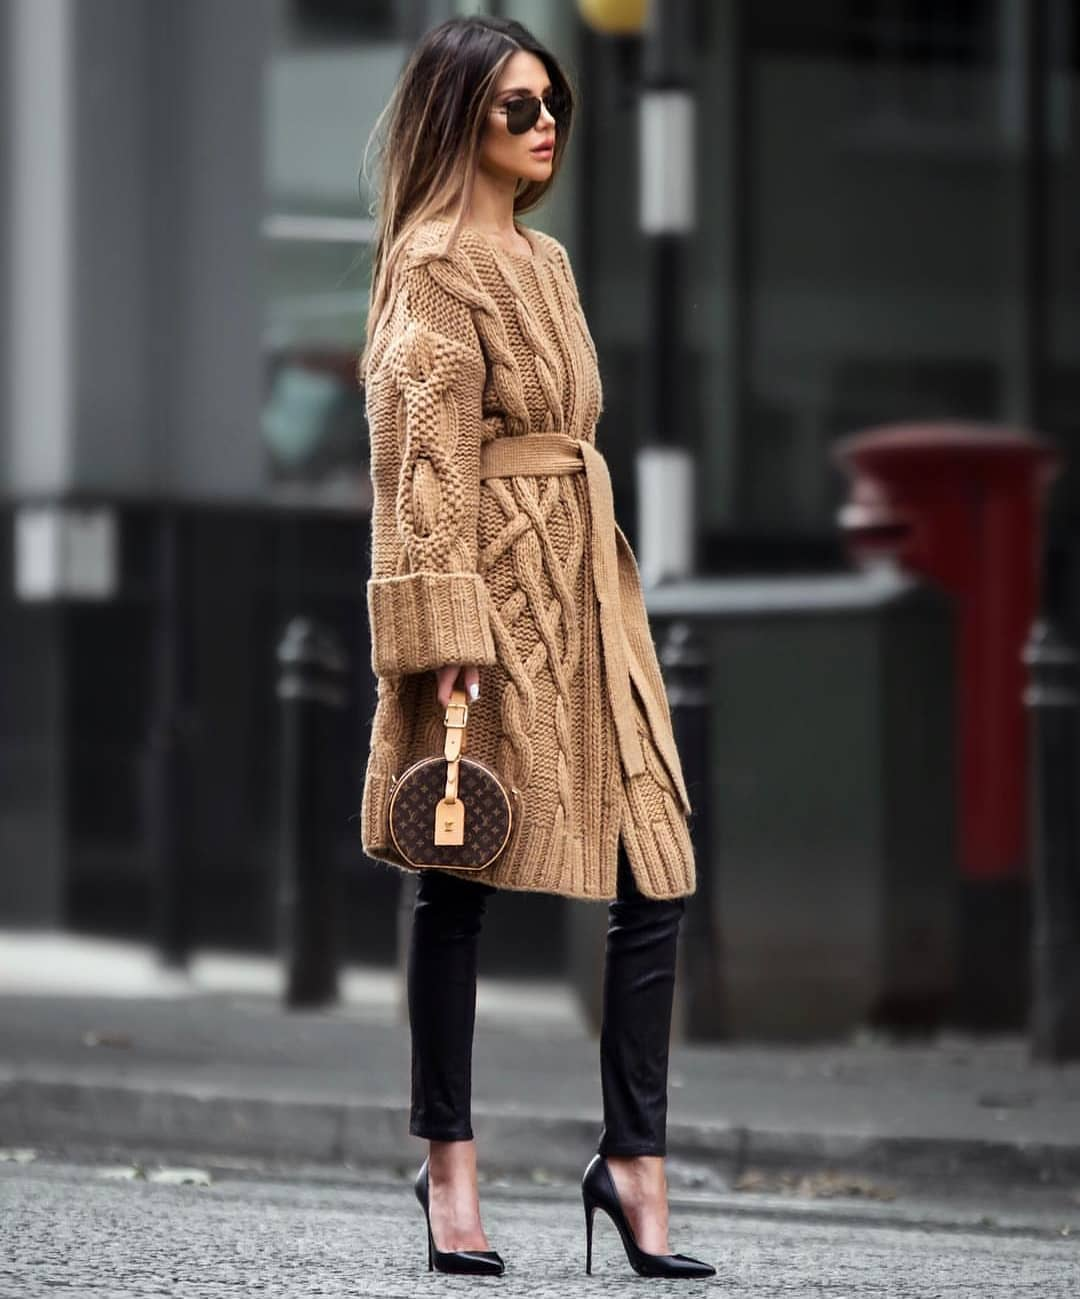 Fall Essentials: Belted Camel Oversized Cable Knit Cardigan And Slim Leather Pants In Black 2019